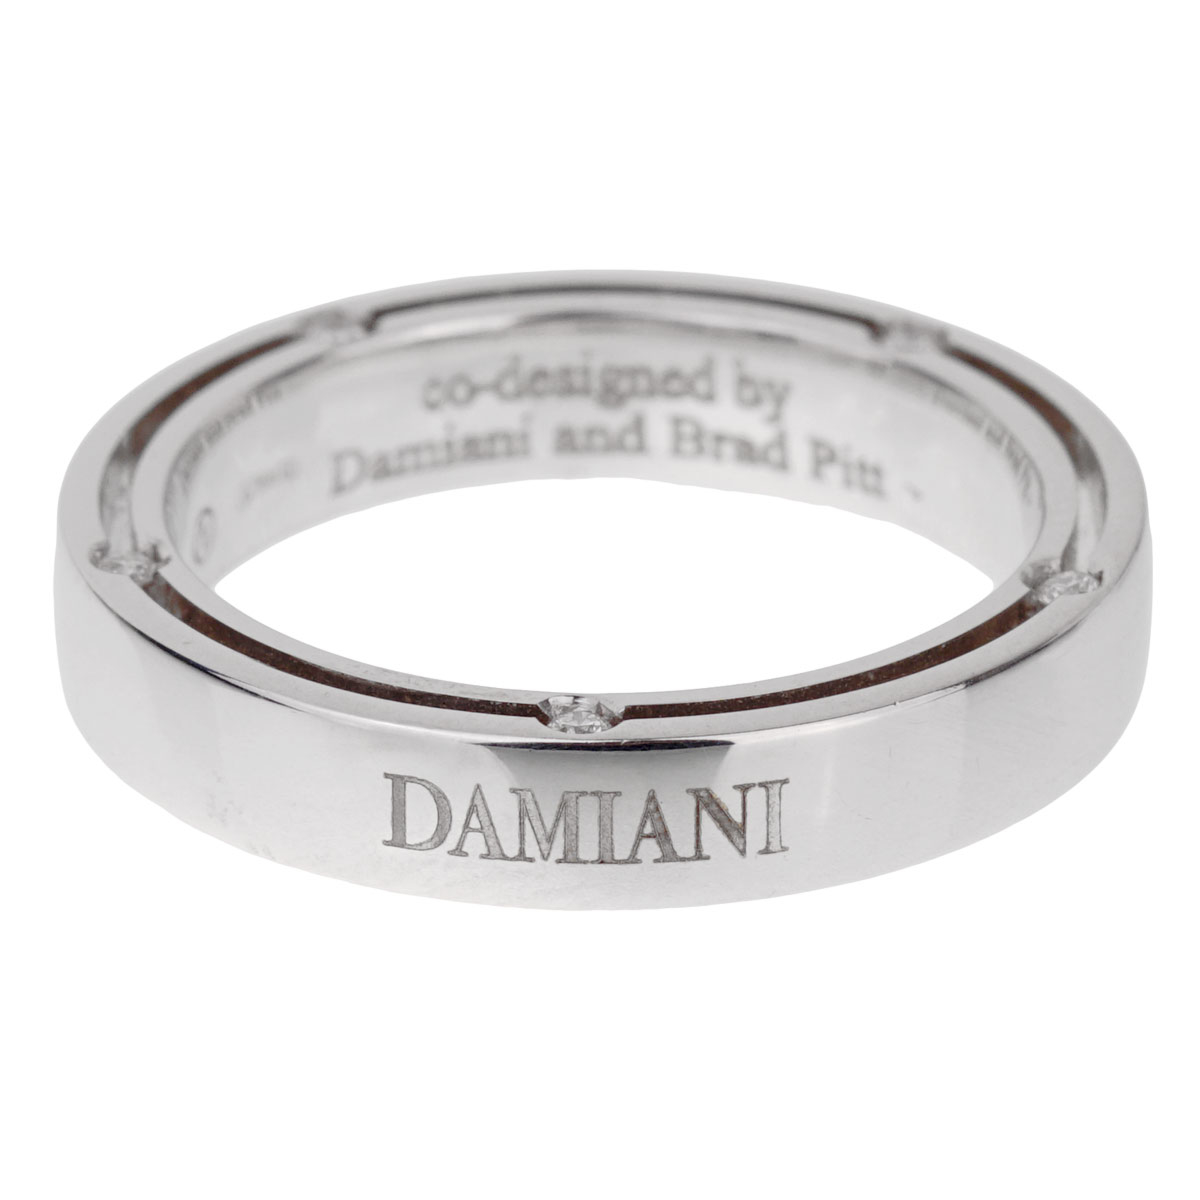 Damiani Brad Pitt White Gold Diamond Ring - Estate Jewelry